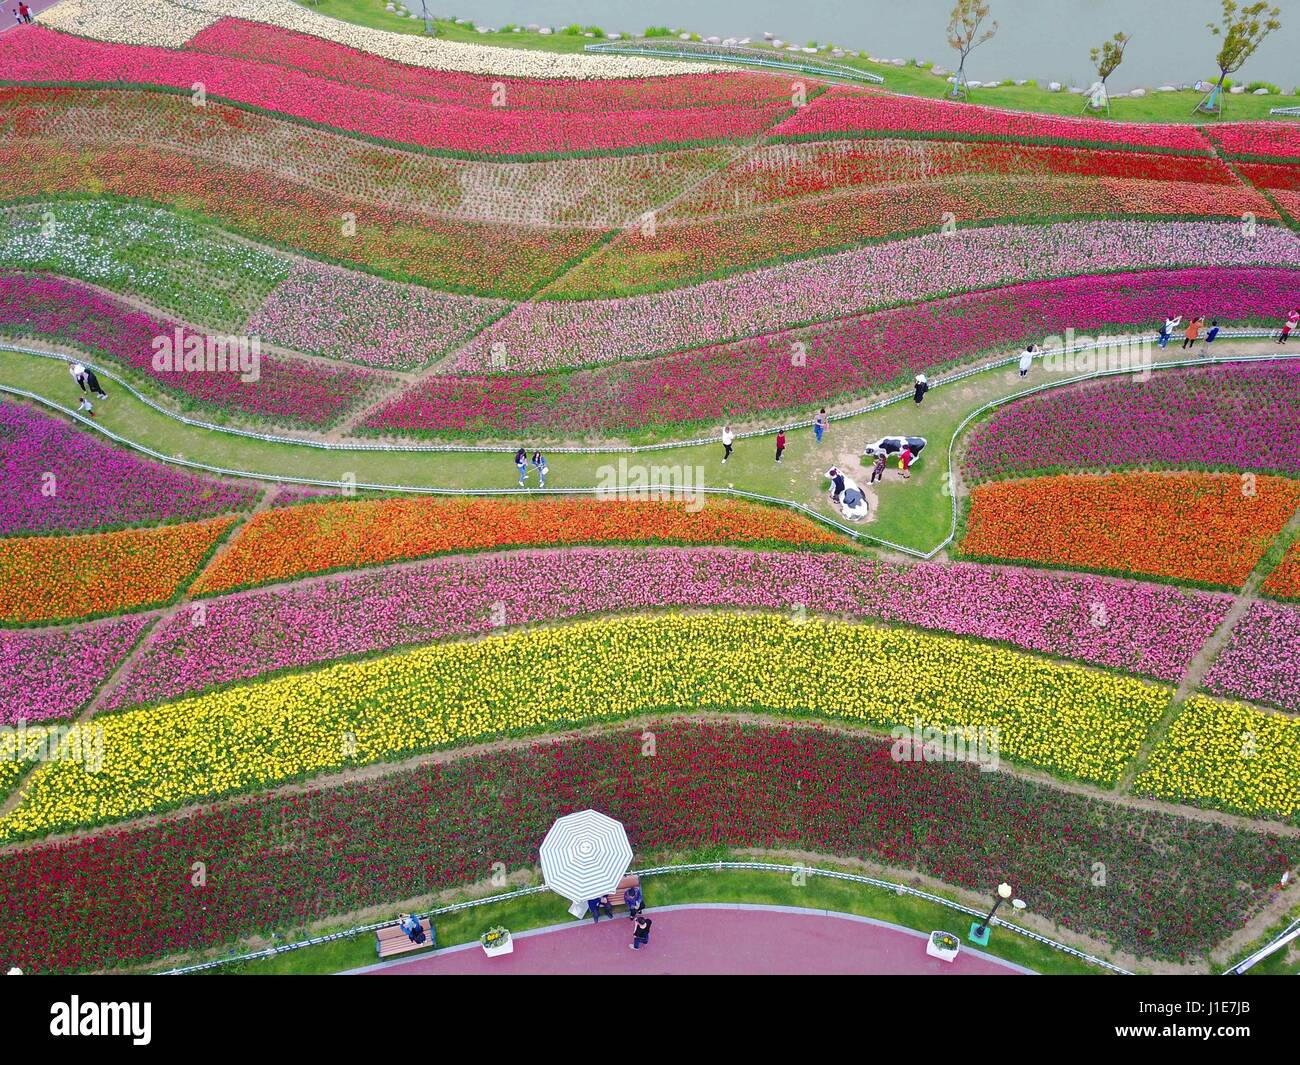 Yancheng, Yancheng, China. 20th Apr, 2017. More than 30 million tulips blossom at a scenic area in Yancheng, east - Stock-Bilder